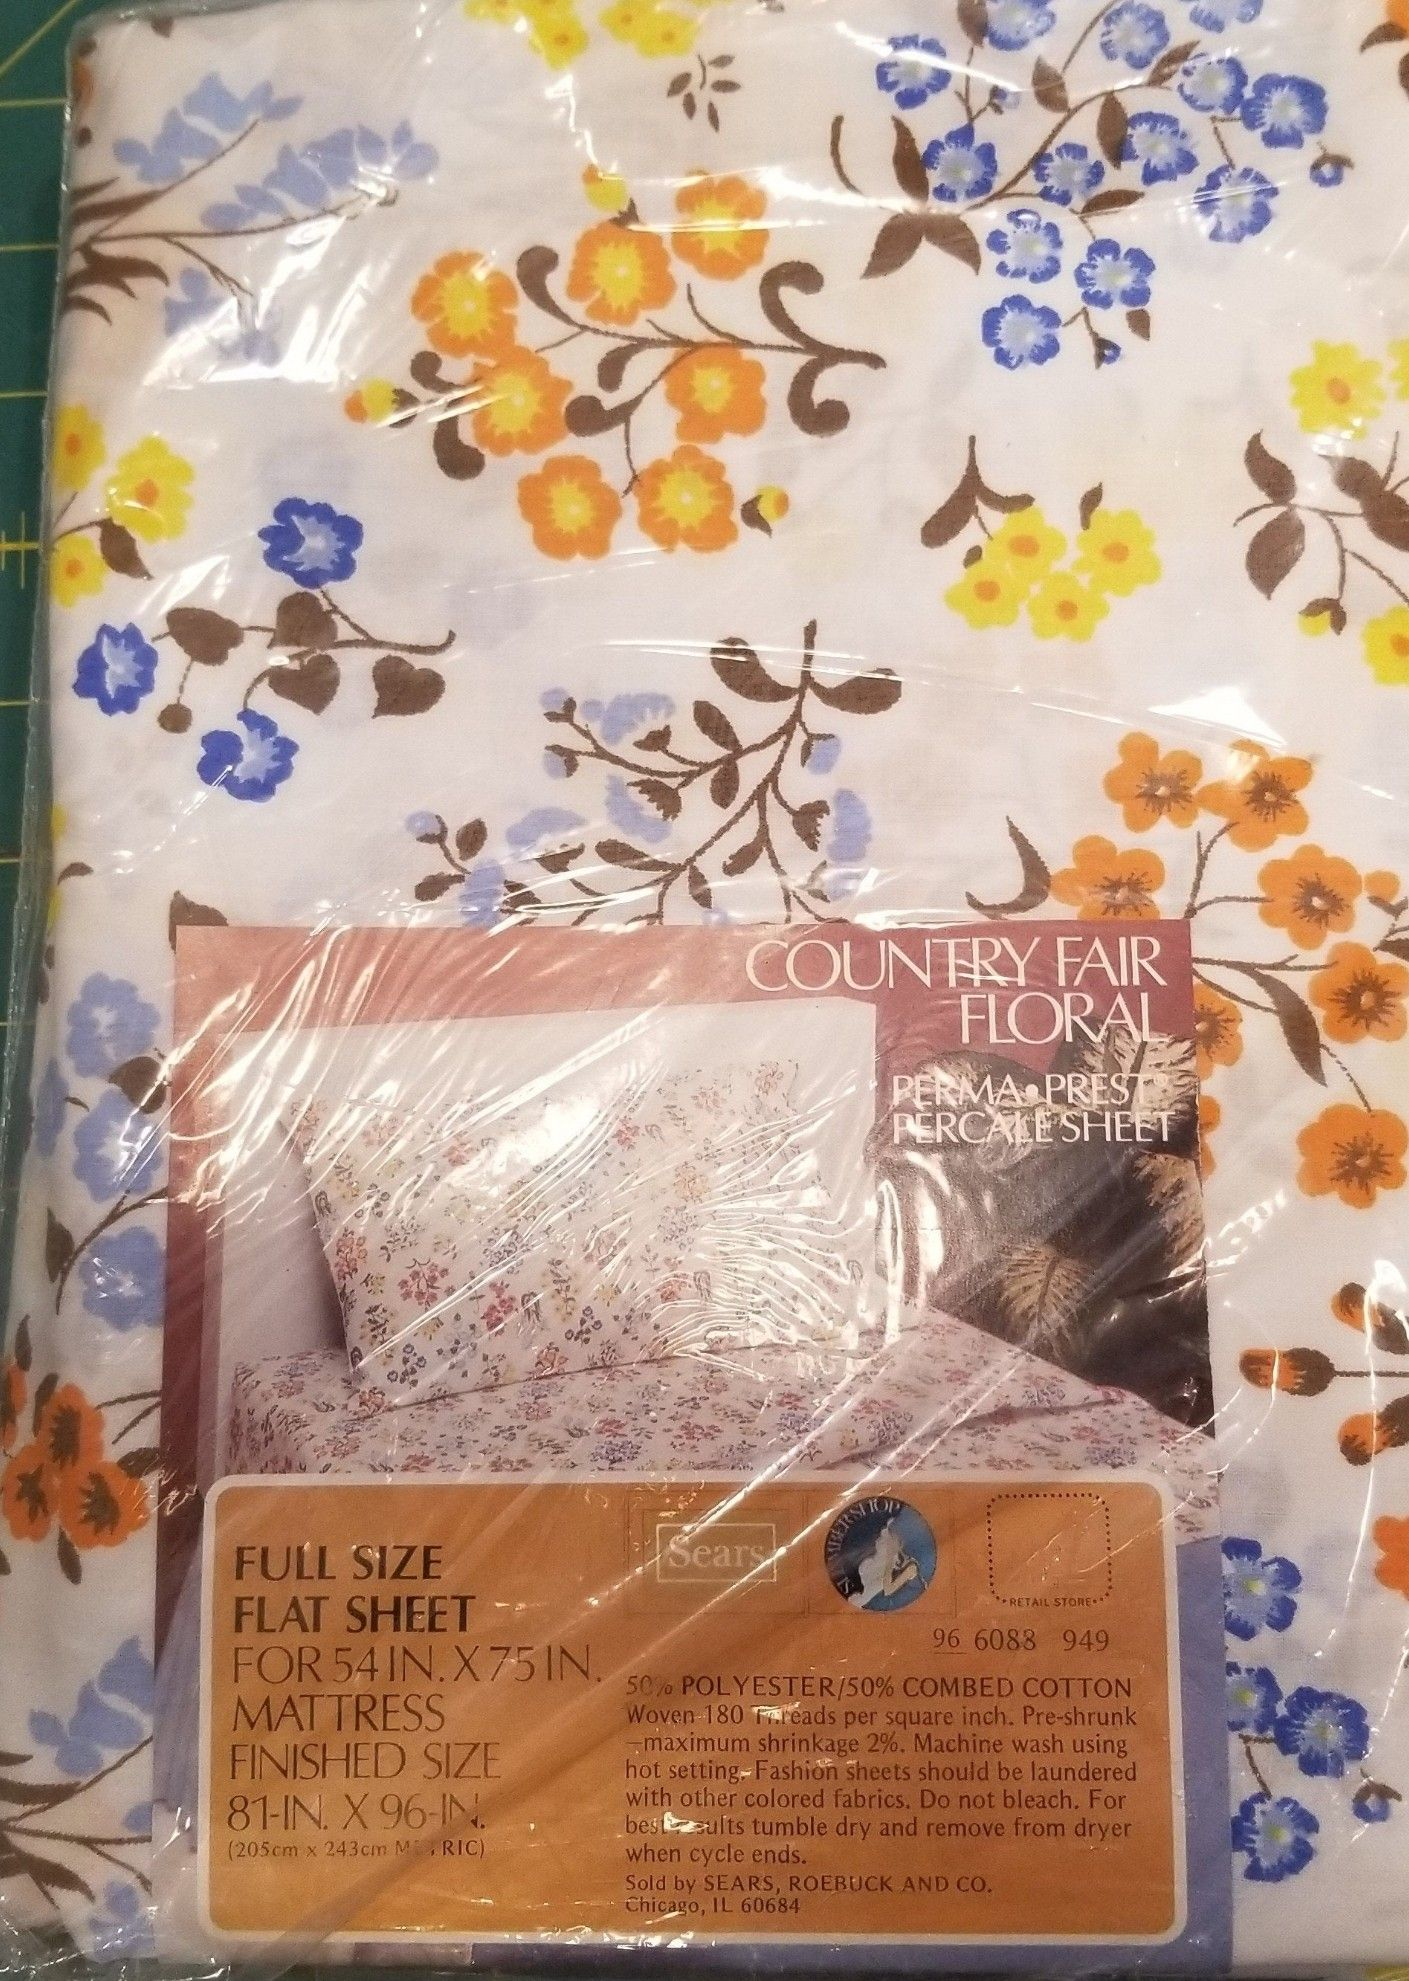 NIP Vintage White /& Black TIGER Full Size Flat Bed Sheet Made in USA by Sears